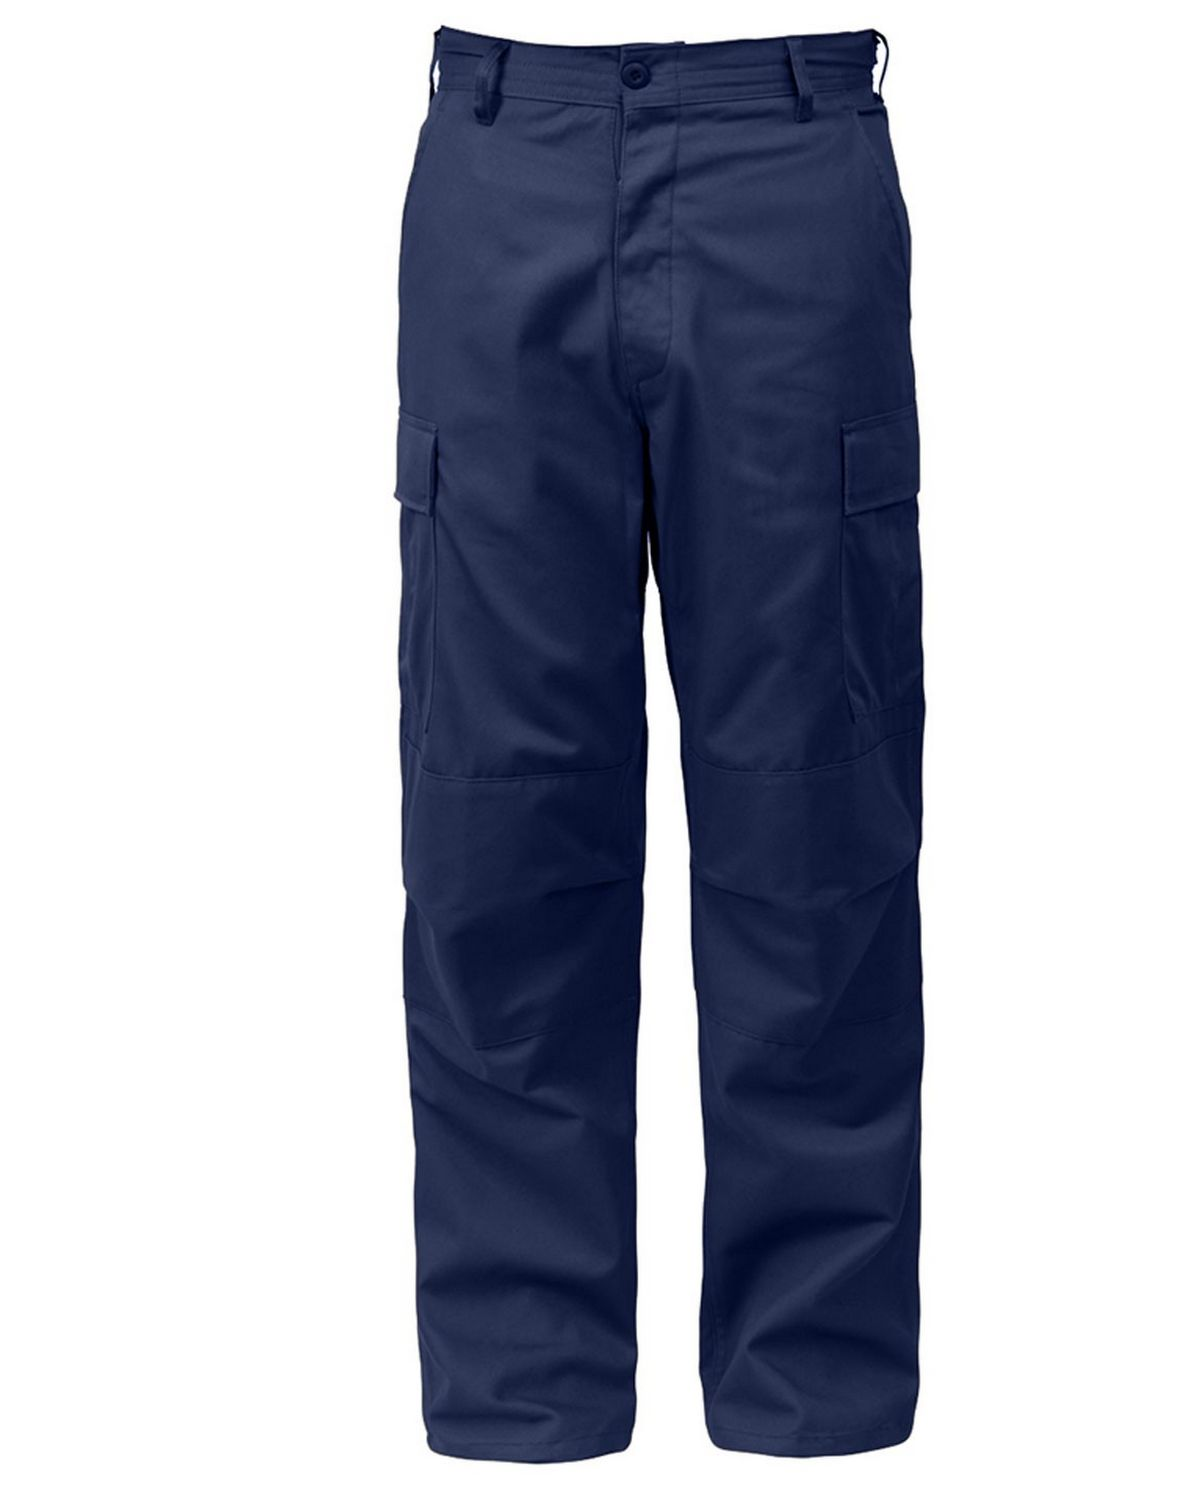 "Rothco 7107 Tactical BDU Pants - Midnight Navy Blue - L (35""-39"" Waist) 7107"